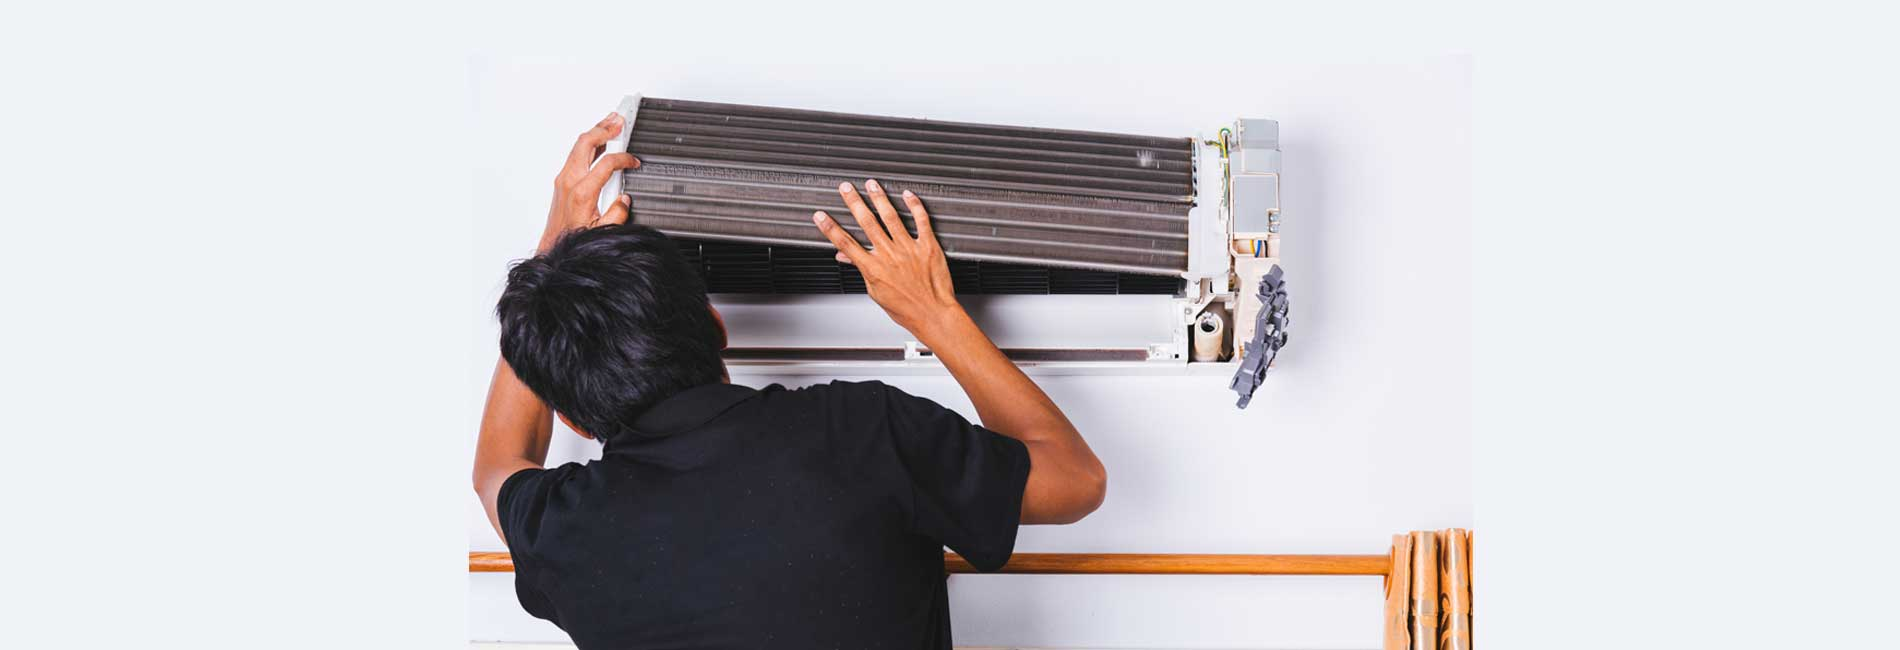 AC Uninstallation Charges in Kattankulathur